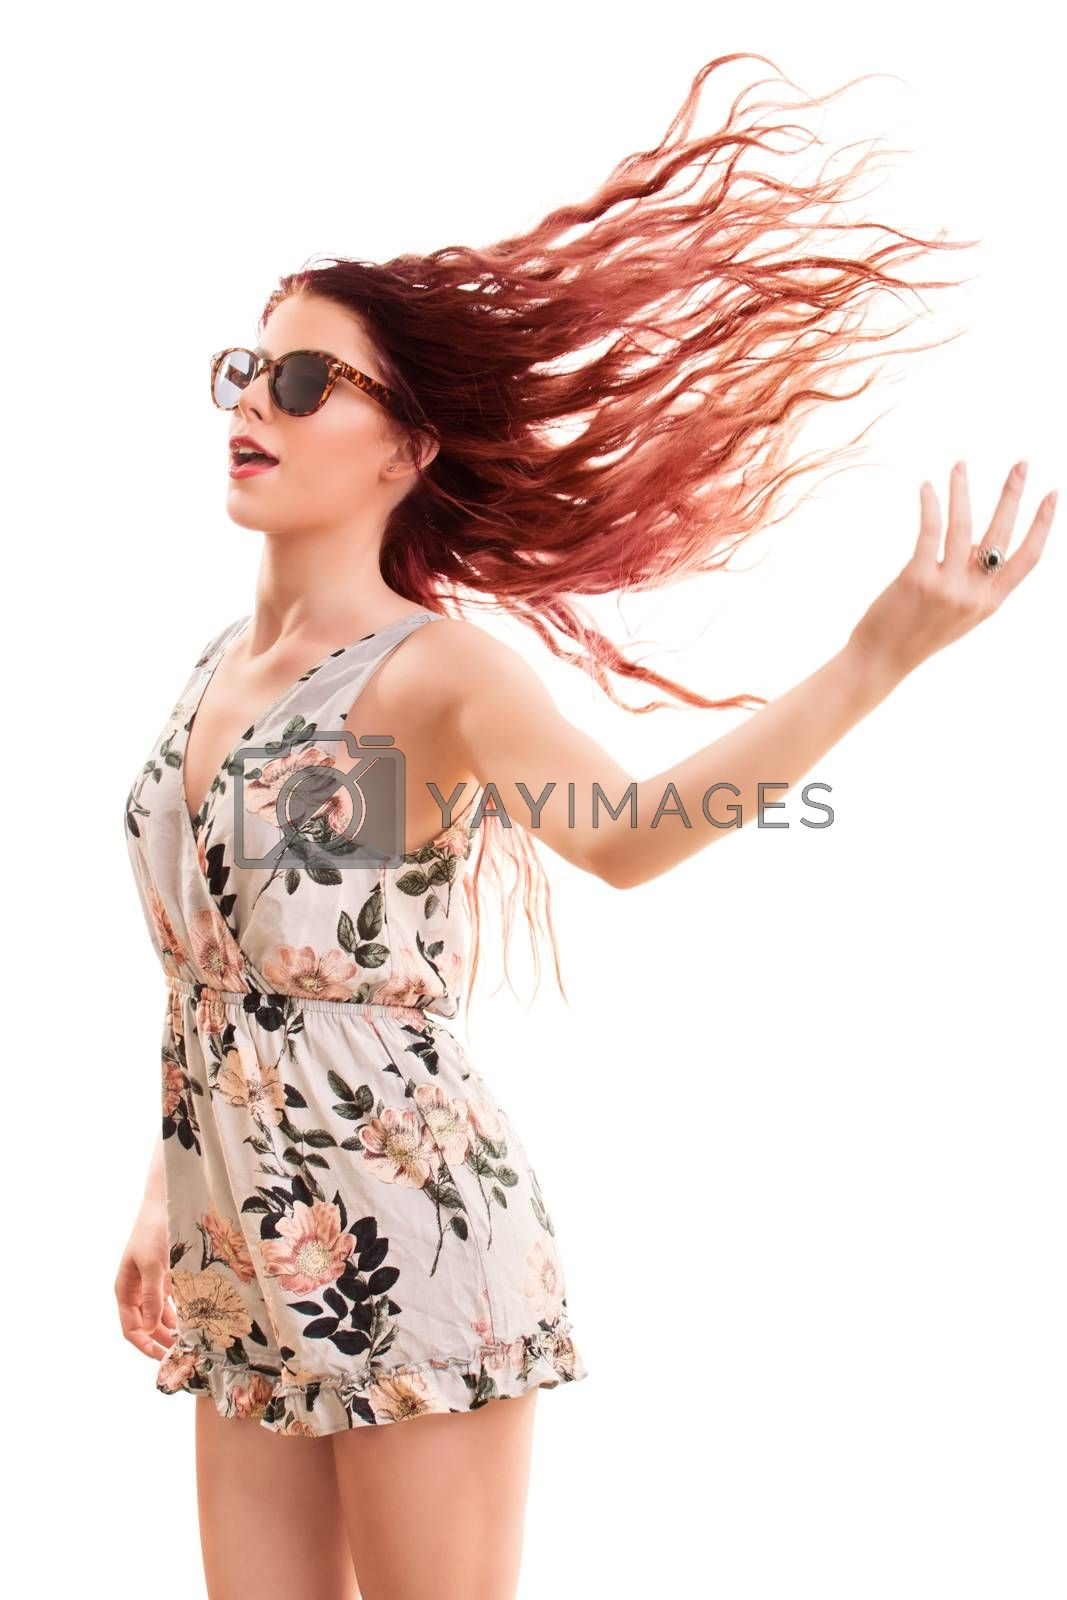 Portrait of a beautiful young girl wearing sunglasses, jumping and playing with her hair, isolated on white background.